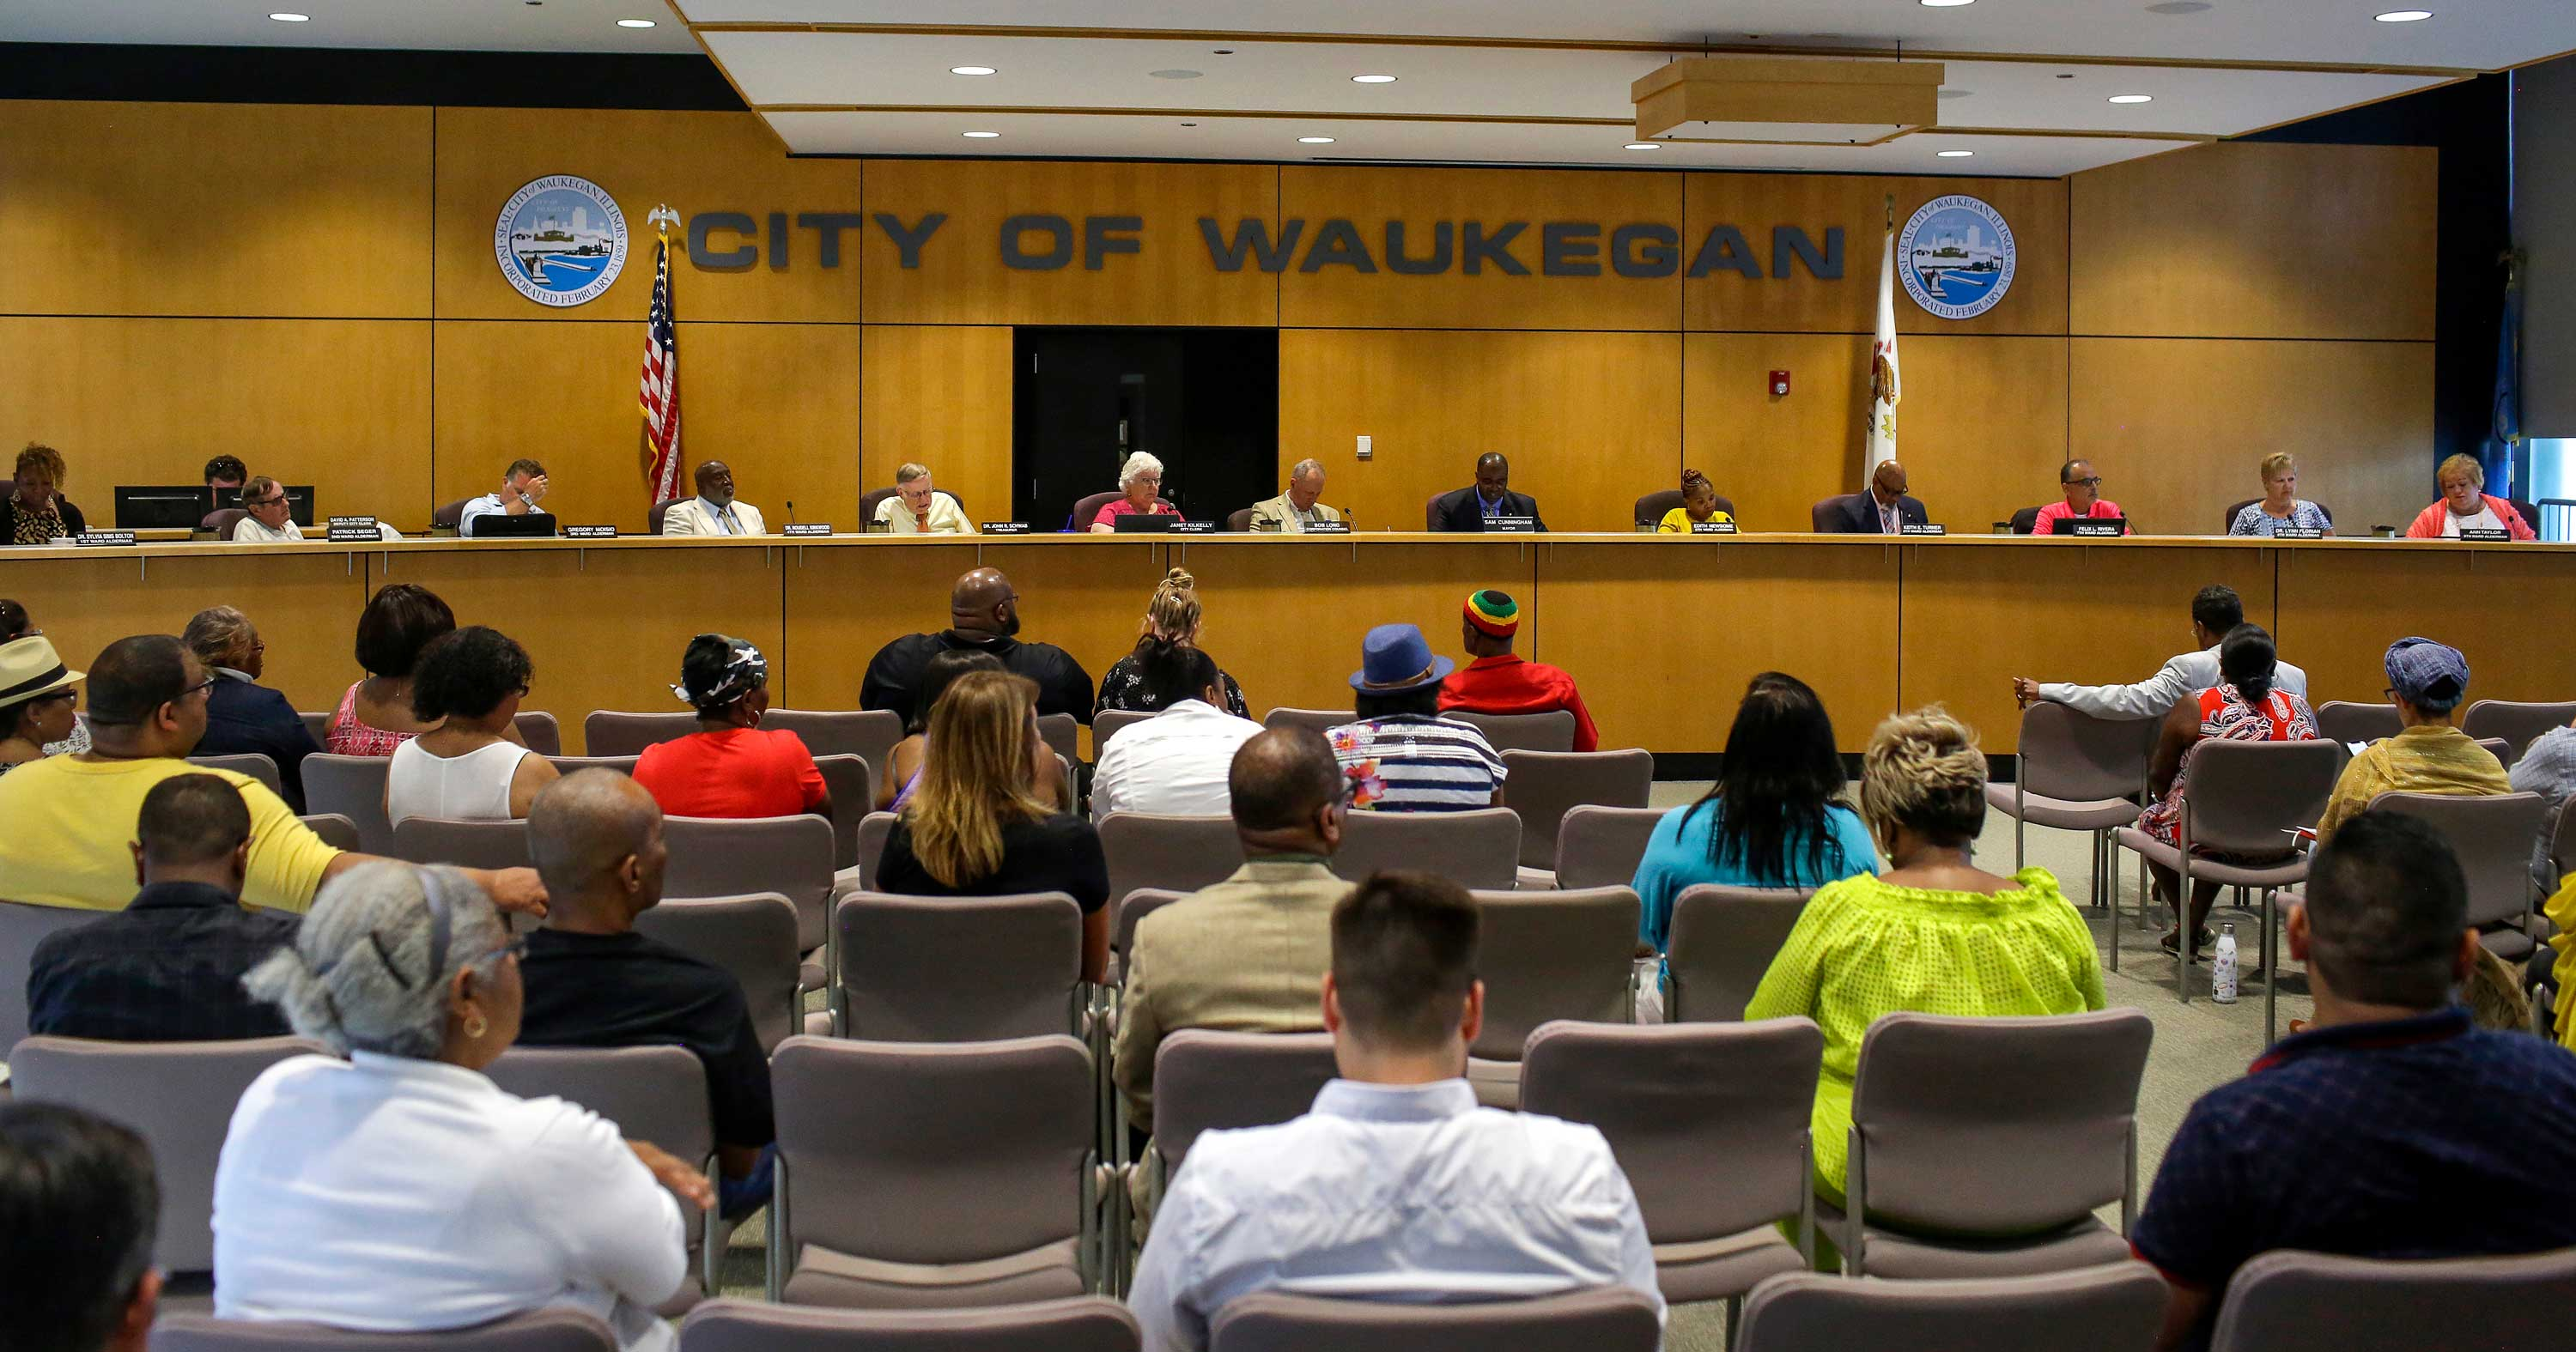 Waukegan City Council members and Mayor Sam Cunningham at a meeting on Aug. 5, 2019. Residents, aldermen and the mayor discussed a proposed casino and video gambling restrictions for the town.